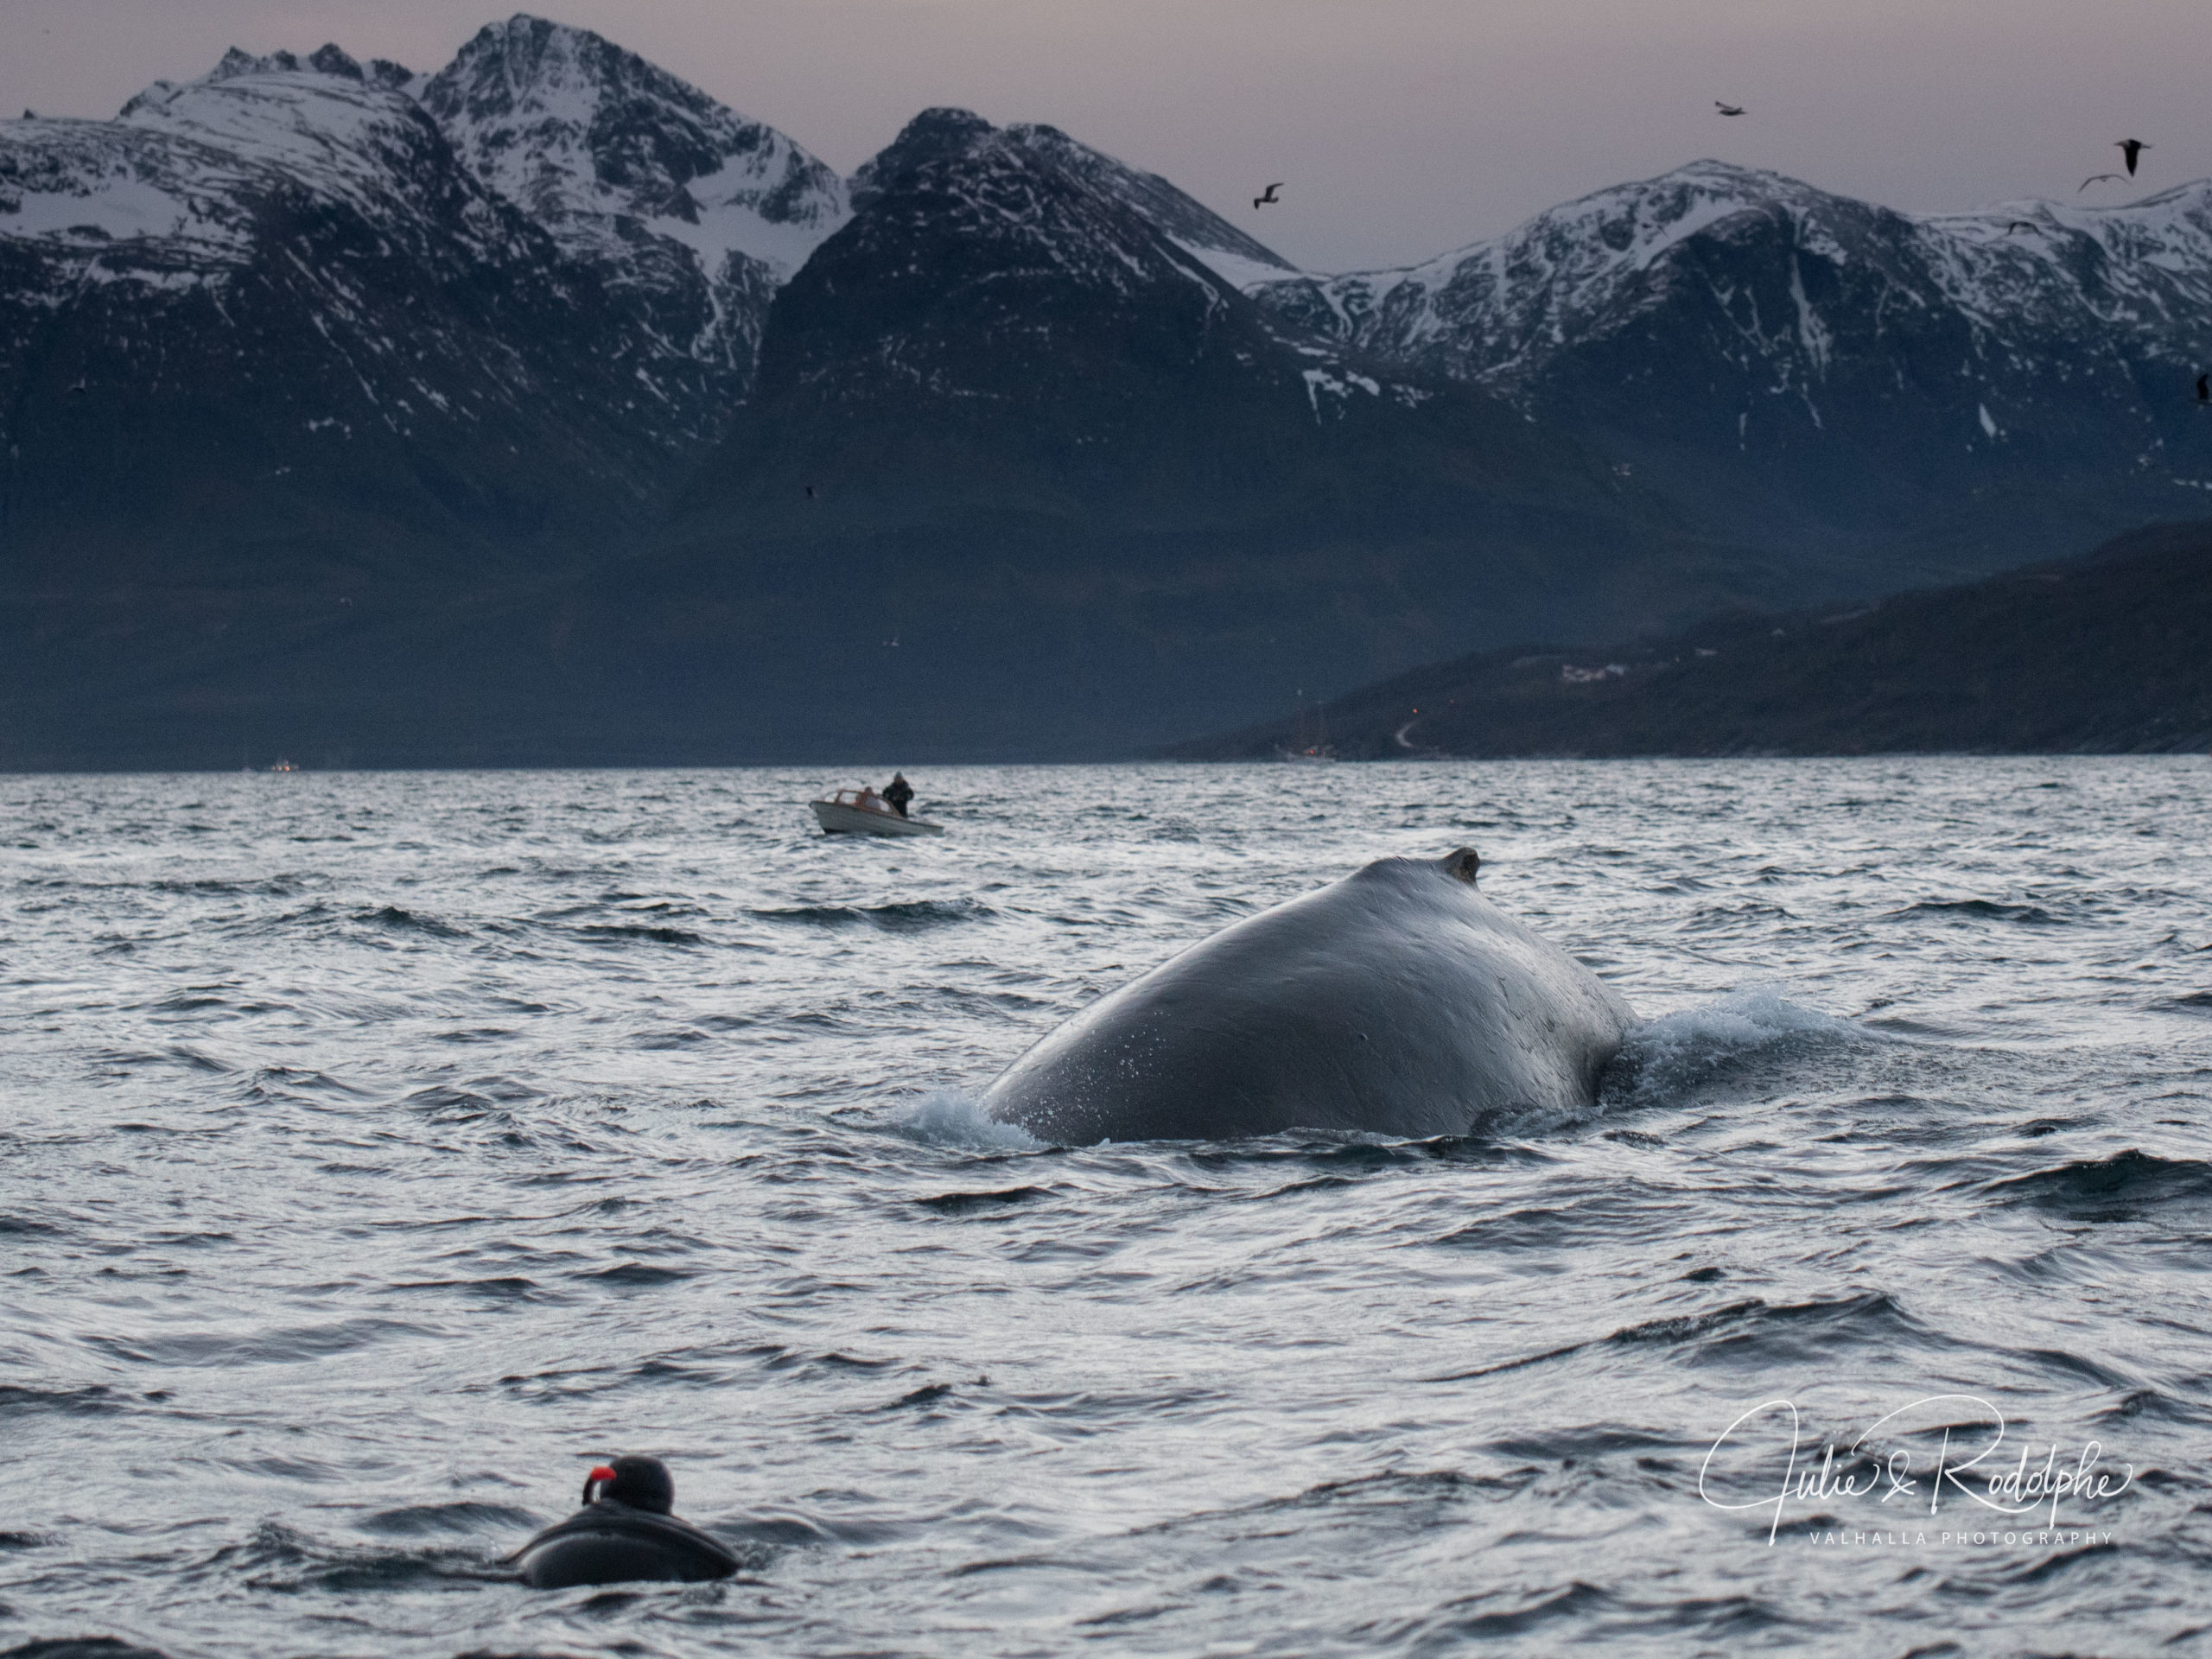 humpback whale swimming in the fjords towards a sparkler red tuba